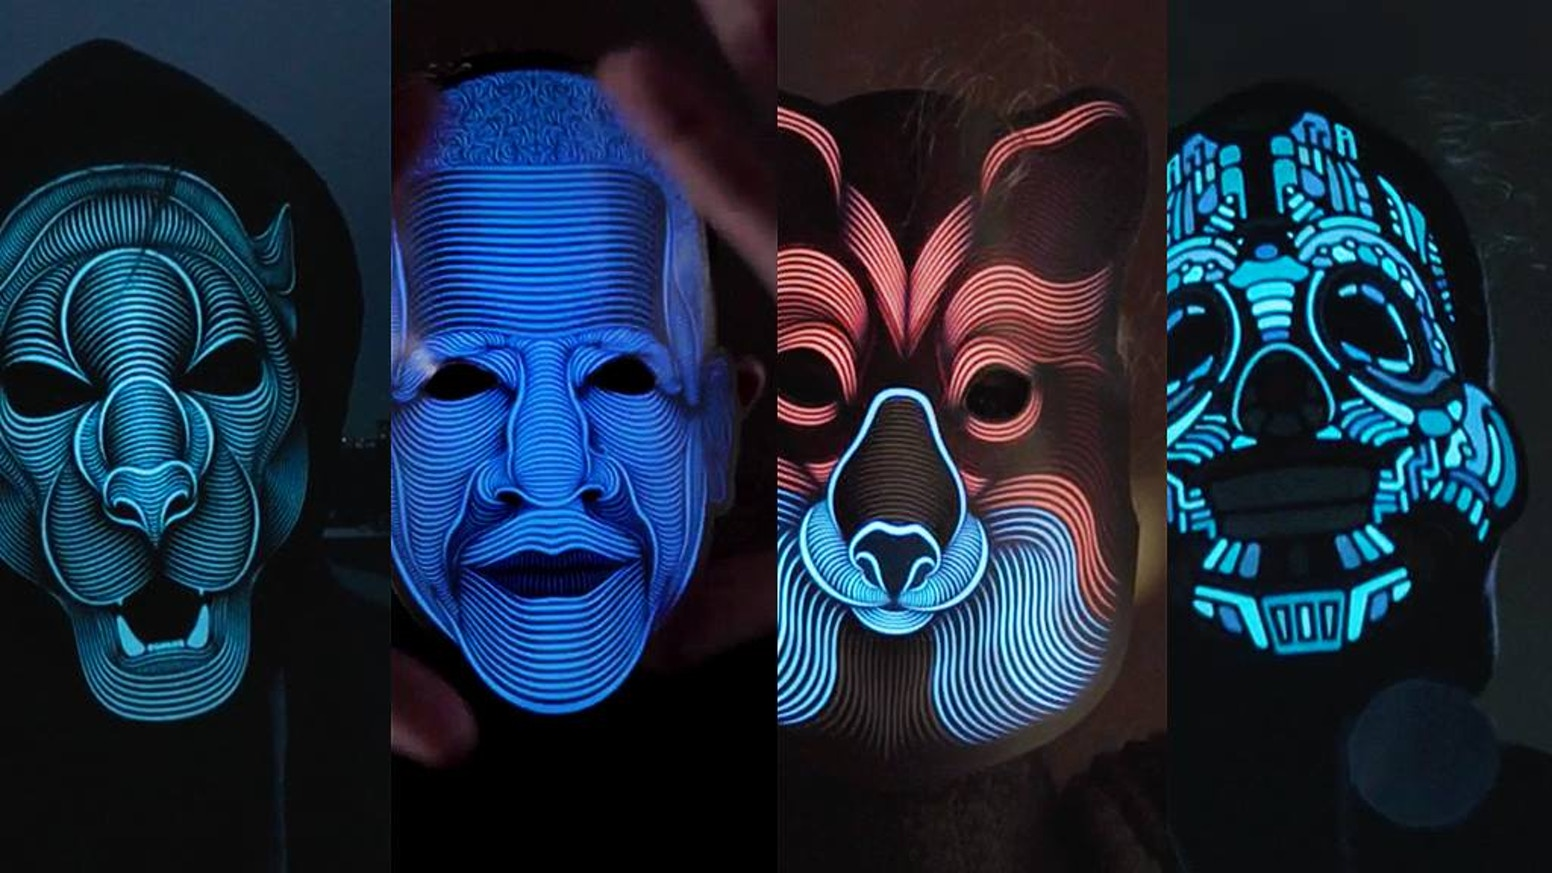 The Sound Reactive Led Mask By Outline Montral Kickstarter Images Skin Care Facial Masker Wajah Korea Good Quality An Electro Luminescent For Art And Music Lovers Back With 8 New Designs